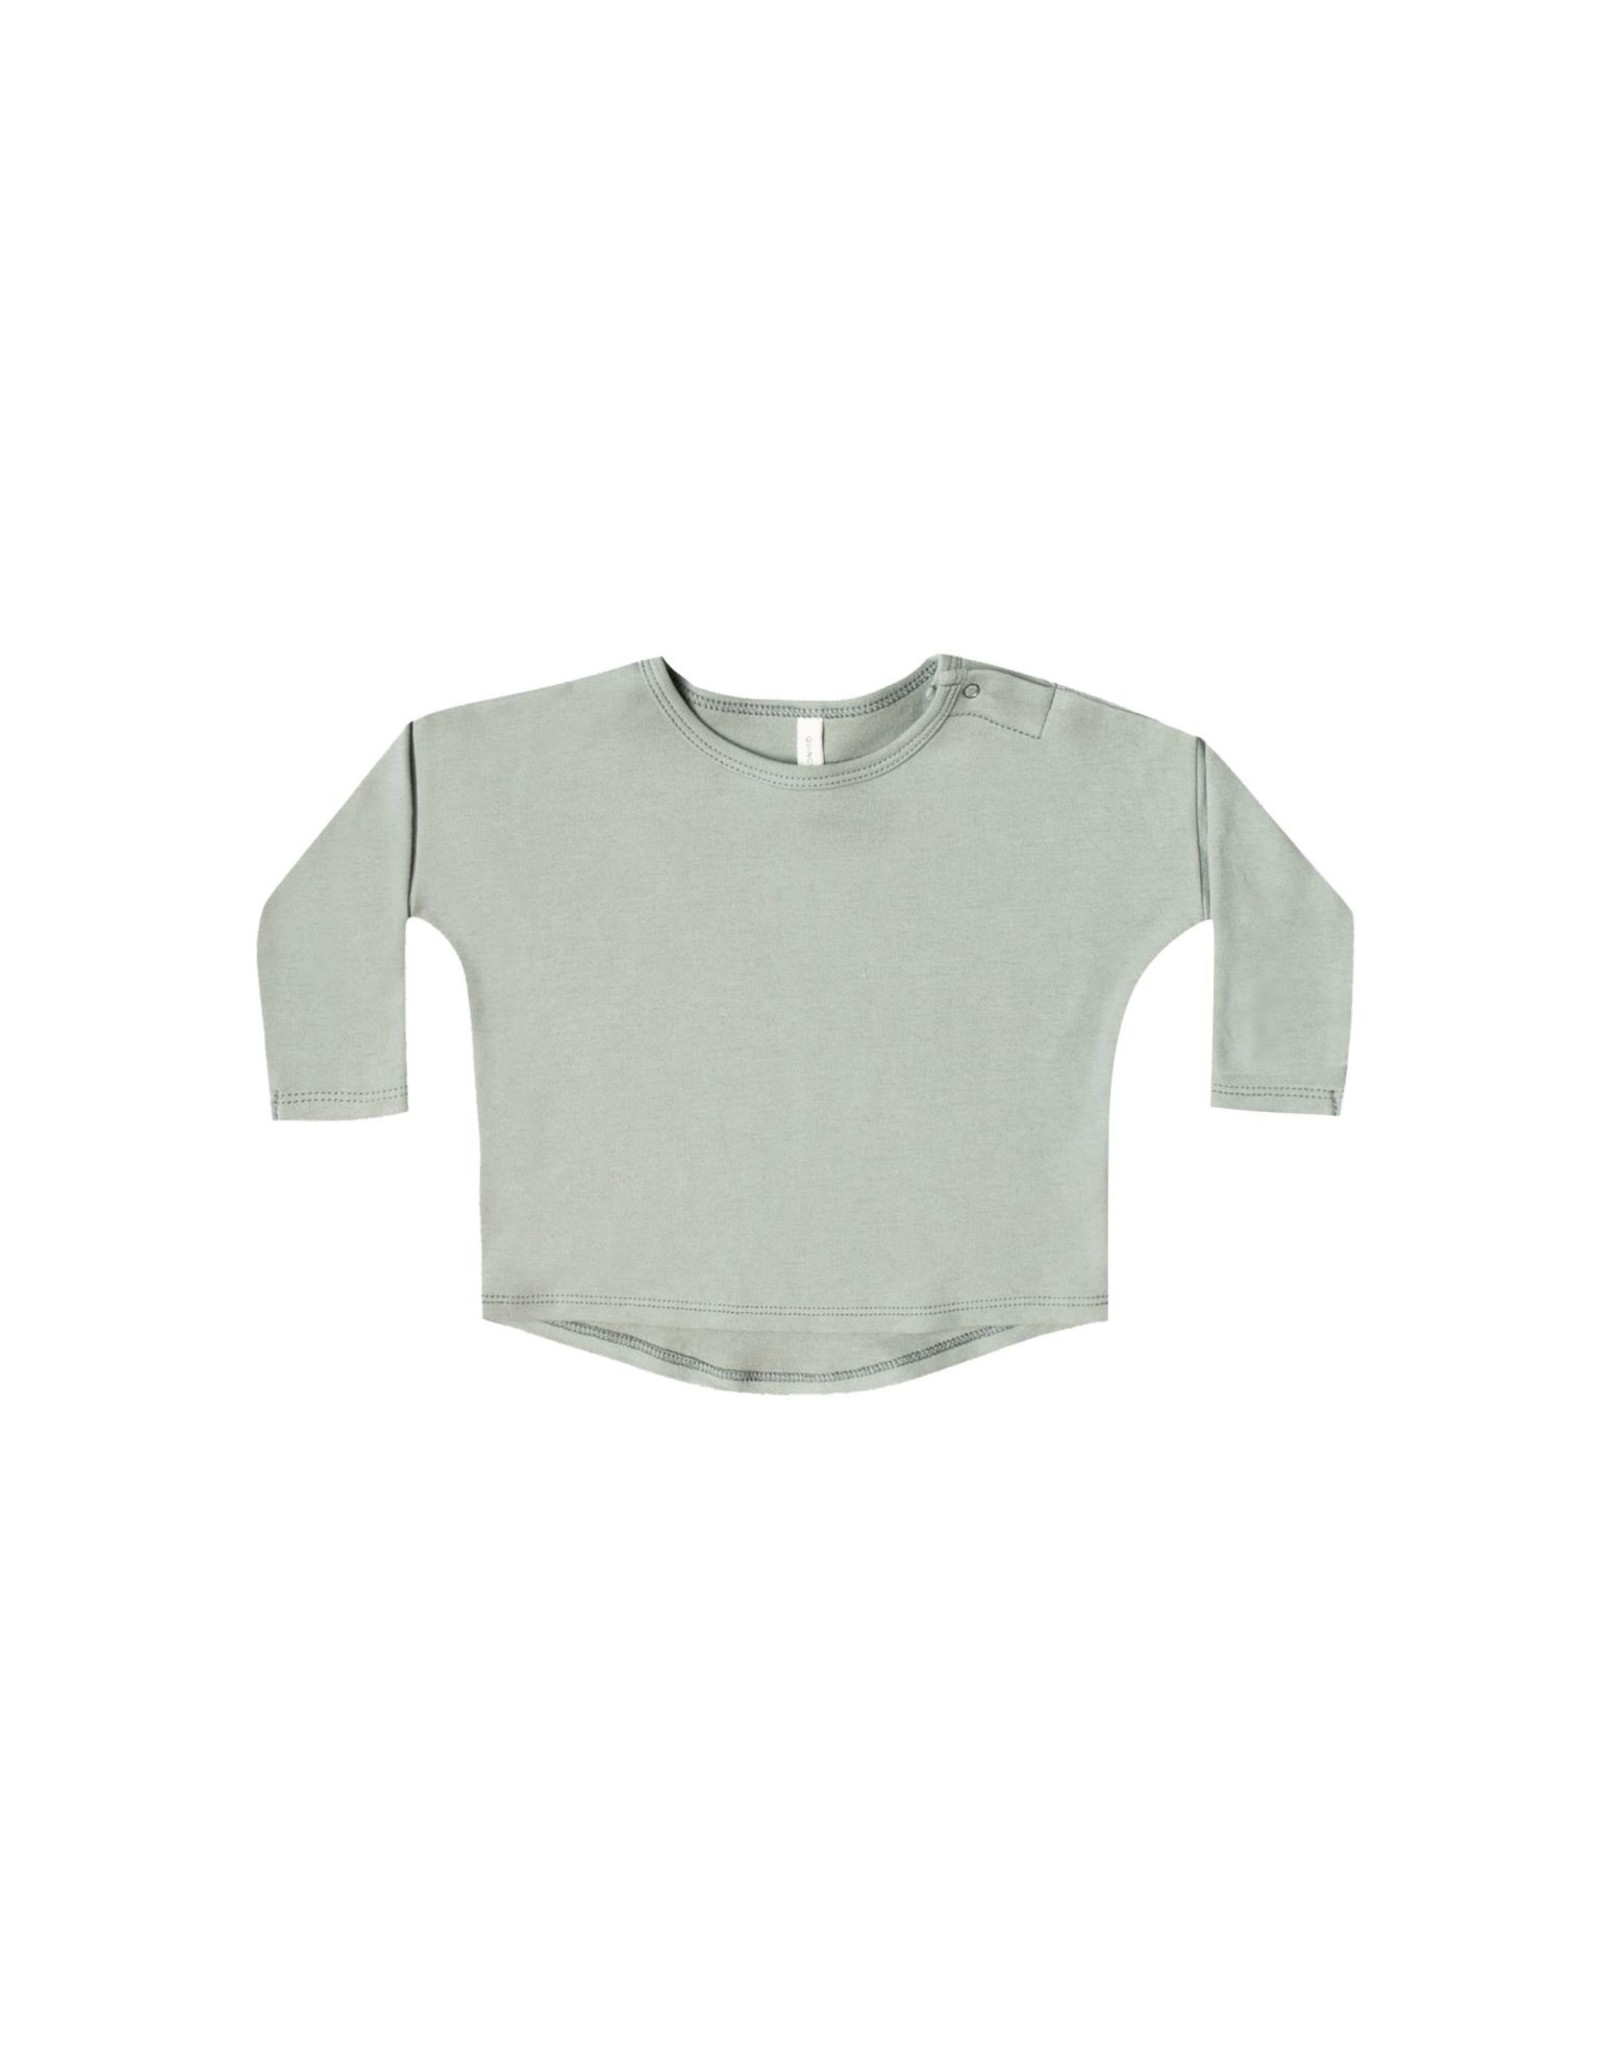 Quincy Mae l/s baby tee- sage